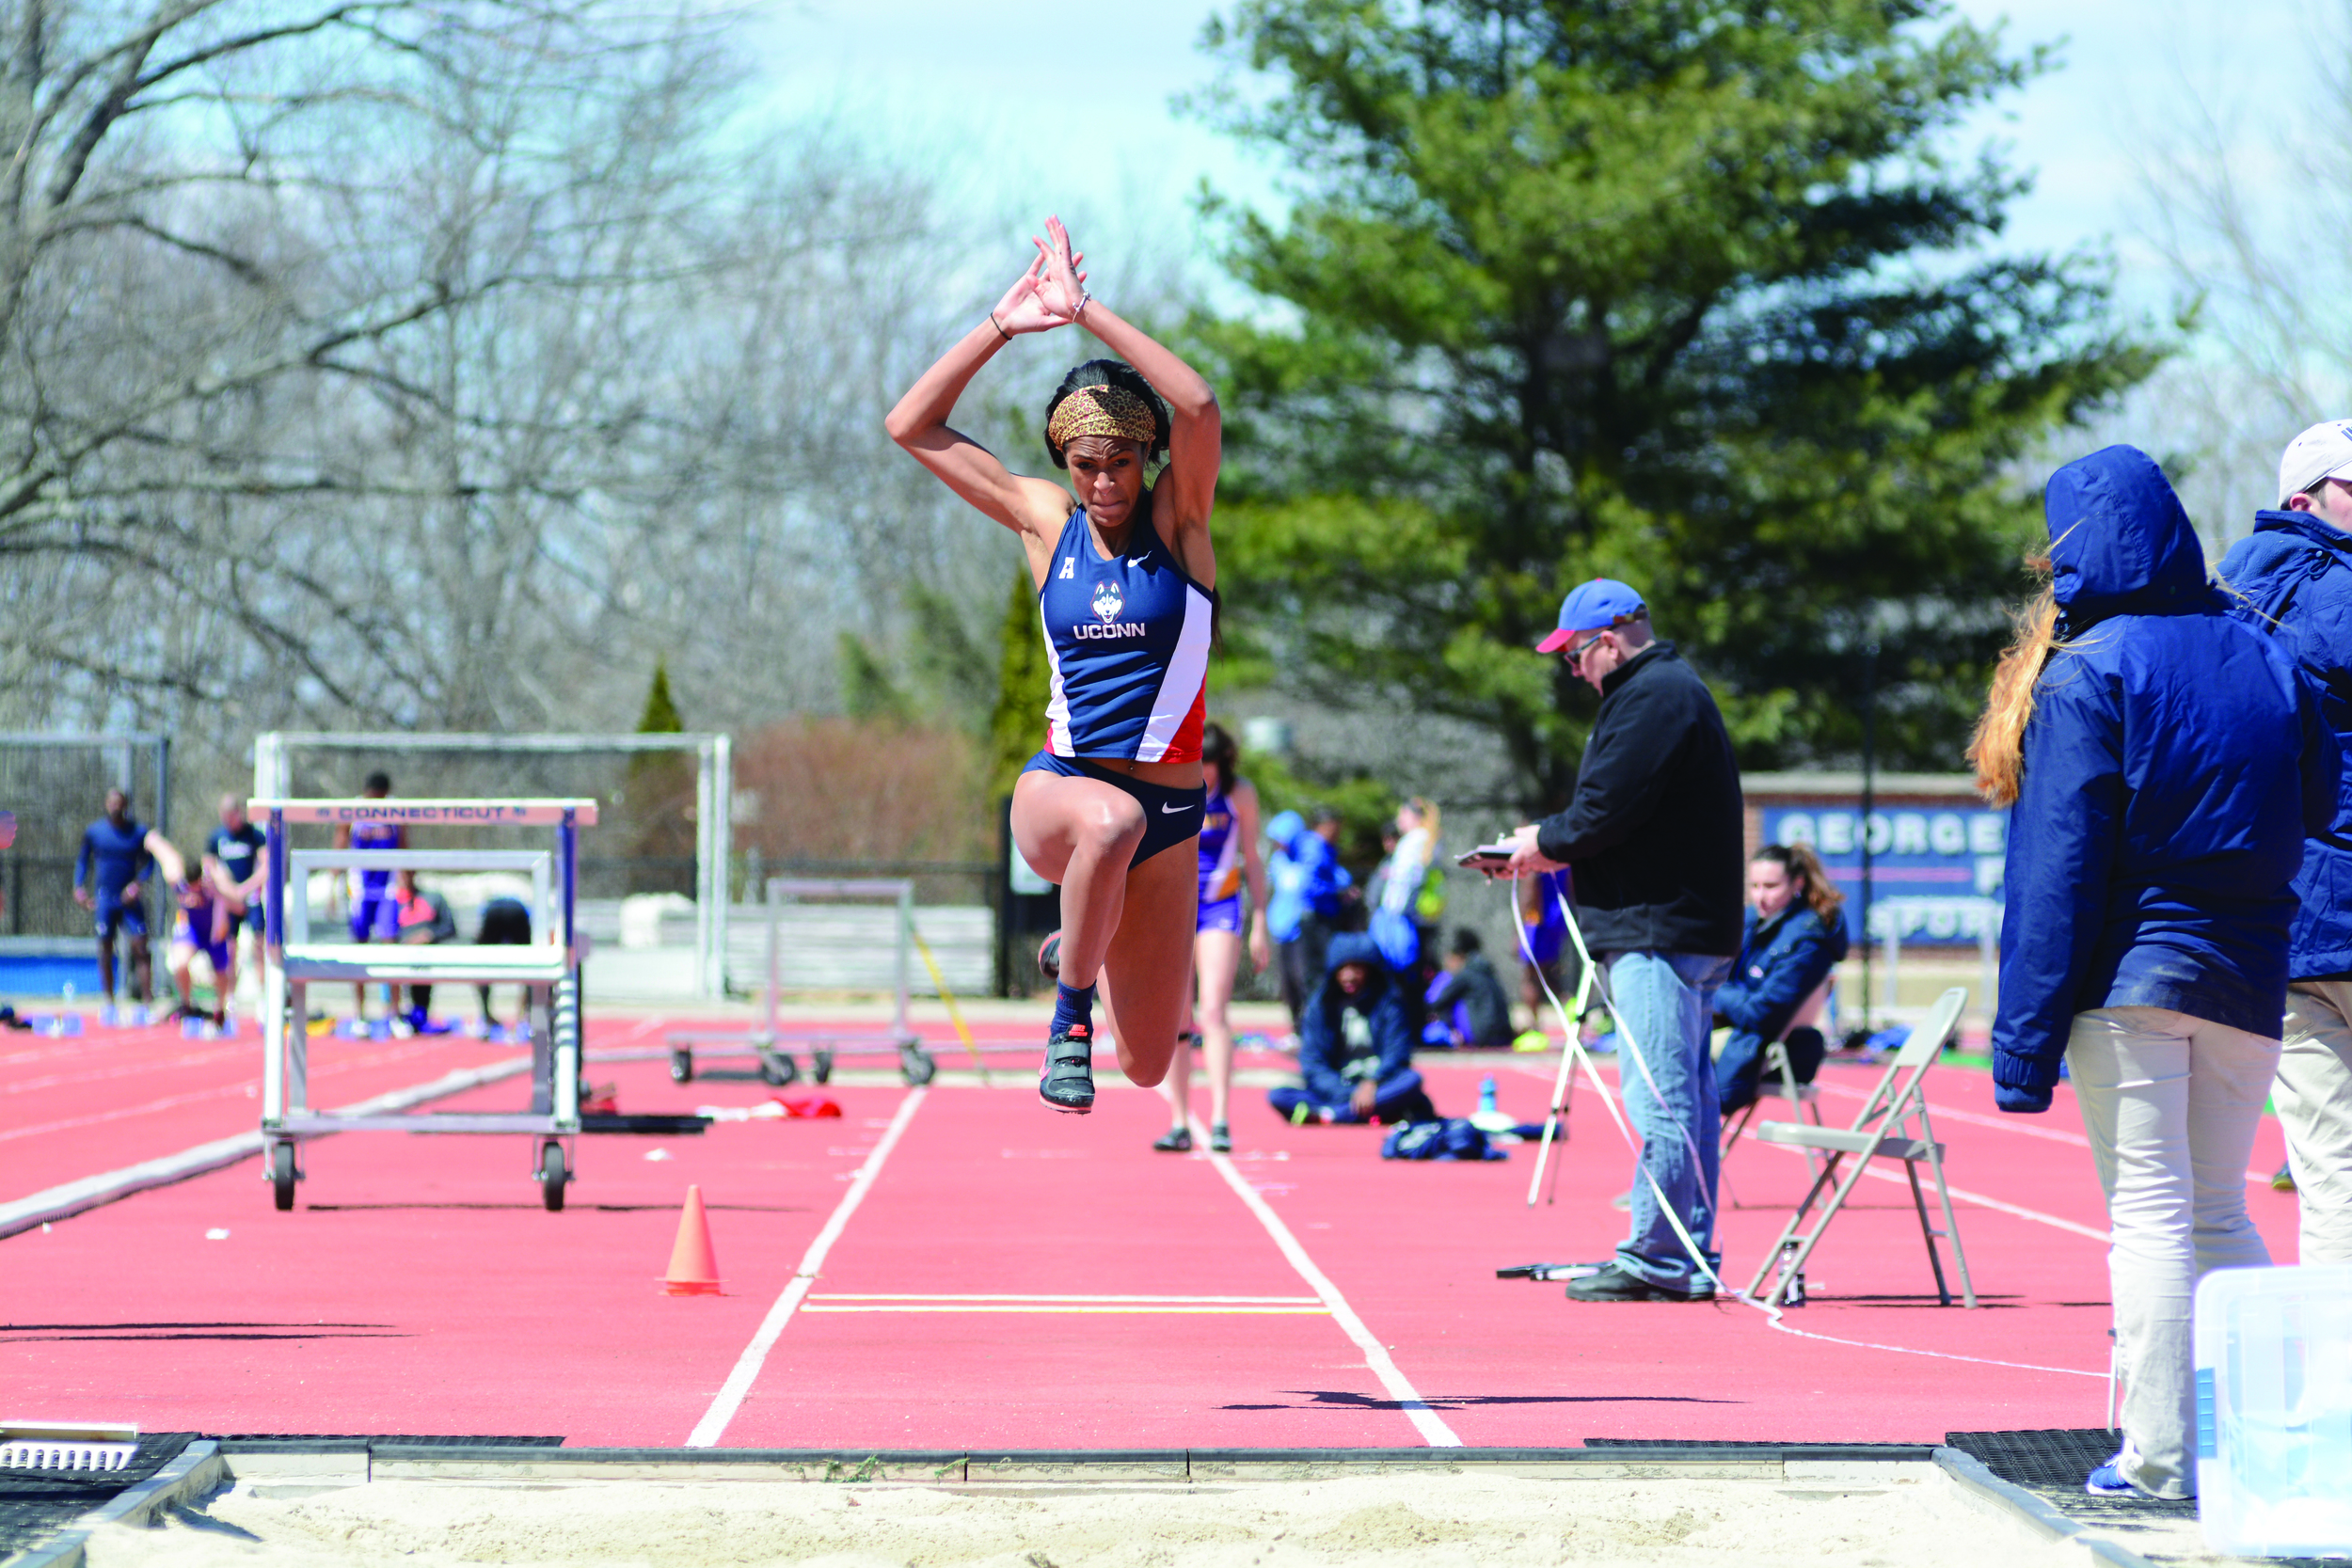 Sarah Bowens competes in the long jump at a meet on April 11, 2015 at the George J. Sherman Family Sports Complex in Storrs. Bowens finished eighth in the triple jump and third in the long jump at the American Athletic Conference championship meet this past weekend. (Photo by Jason Jiang/The Daily Campus)